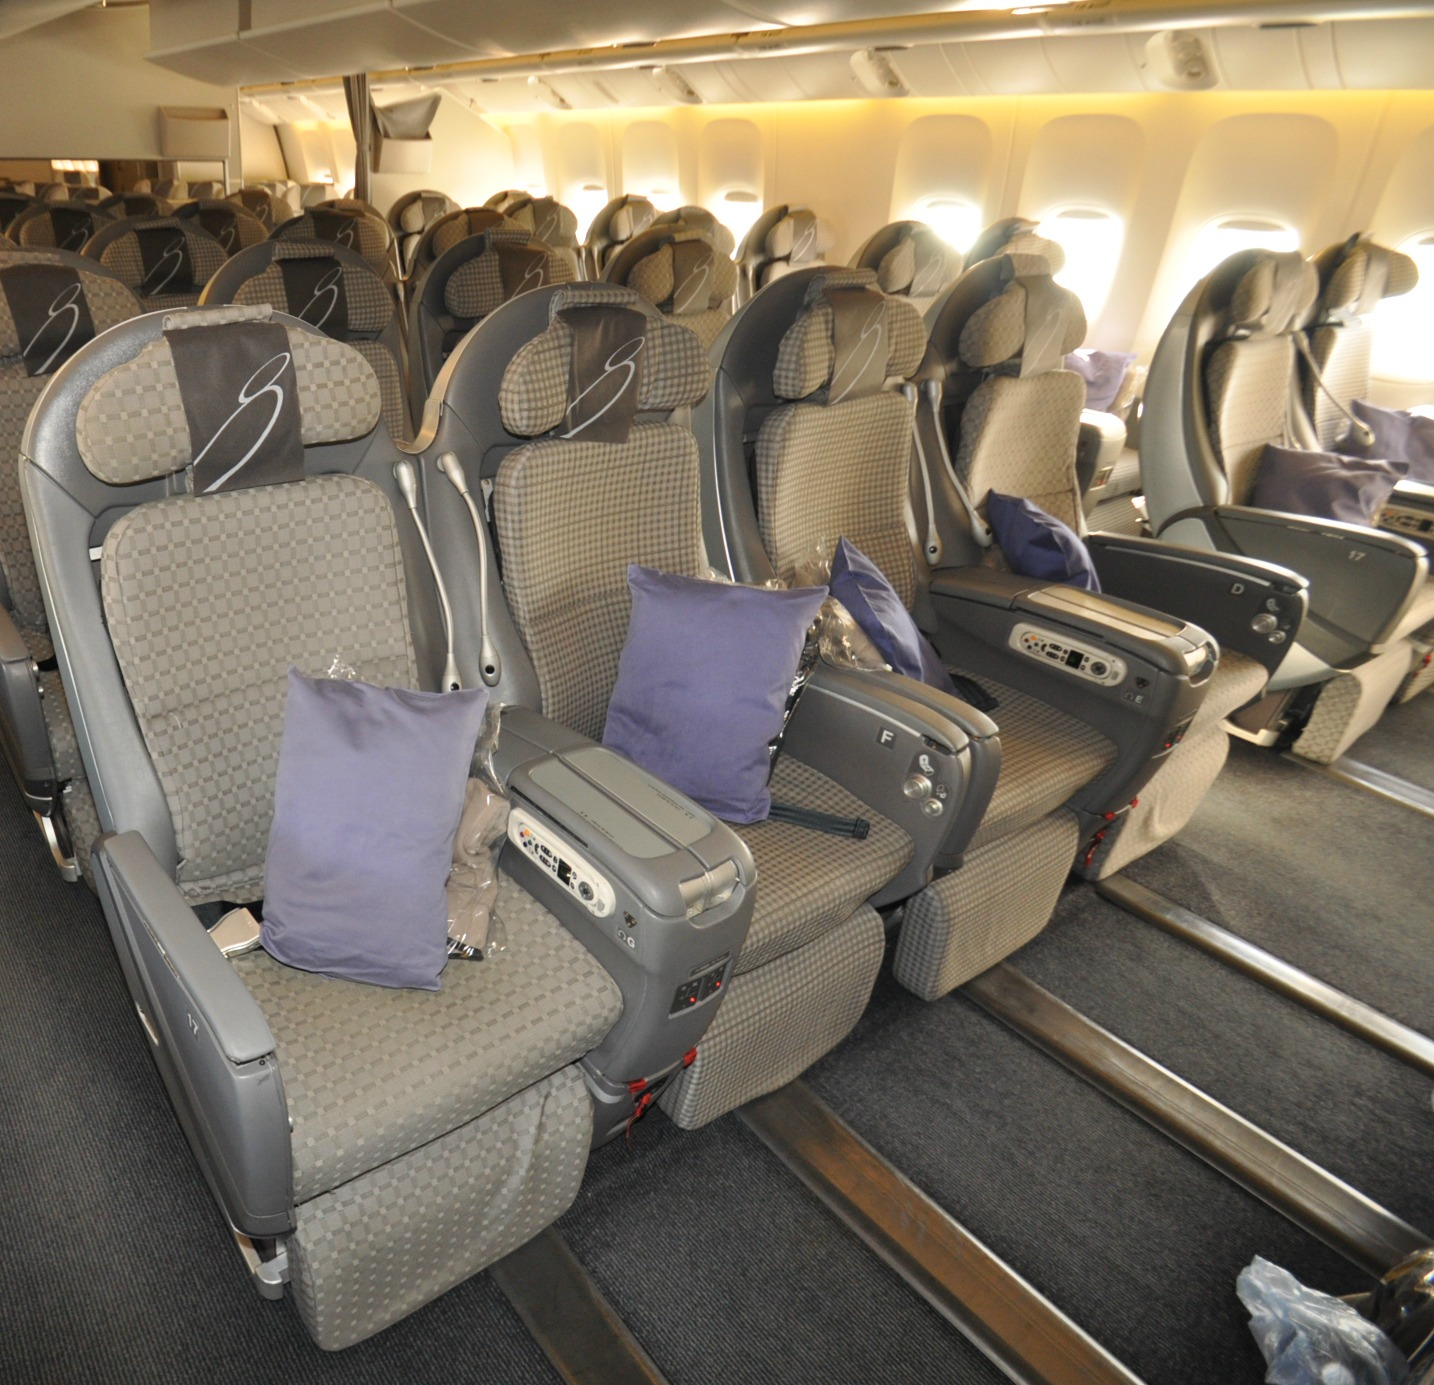 Economy Plus Airplane Seating: What's the Difference?